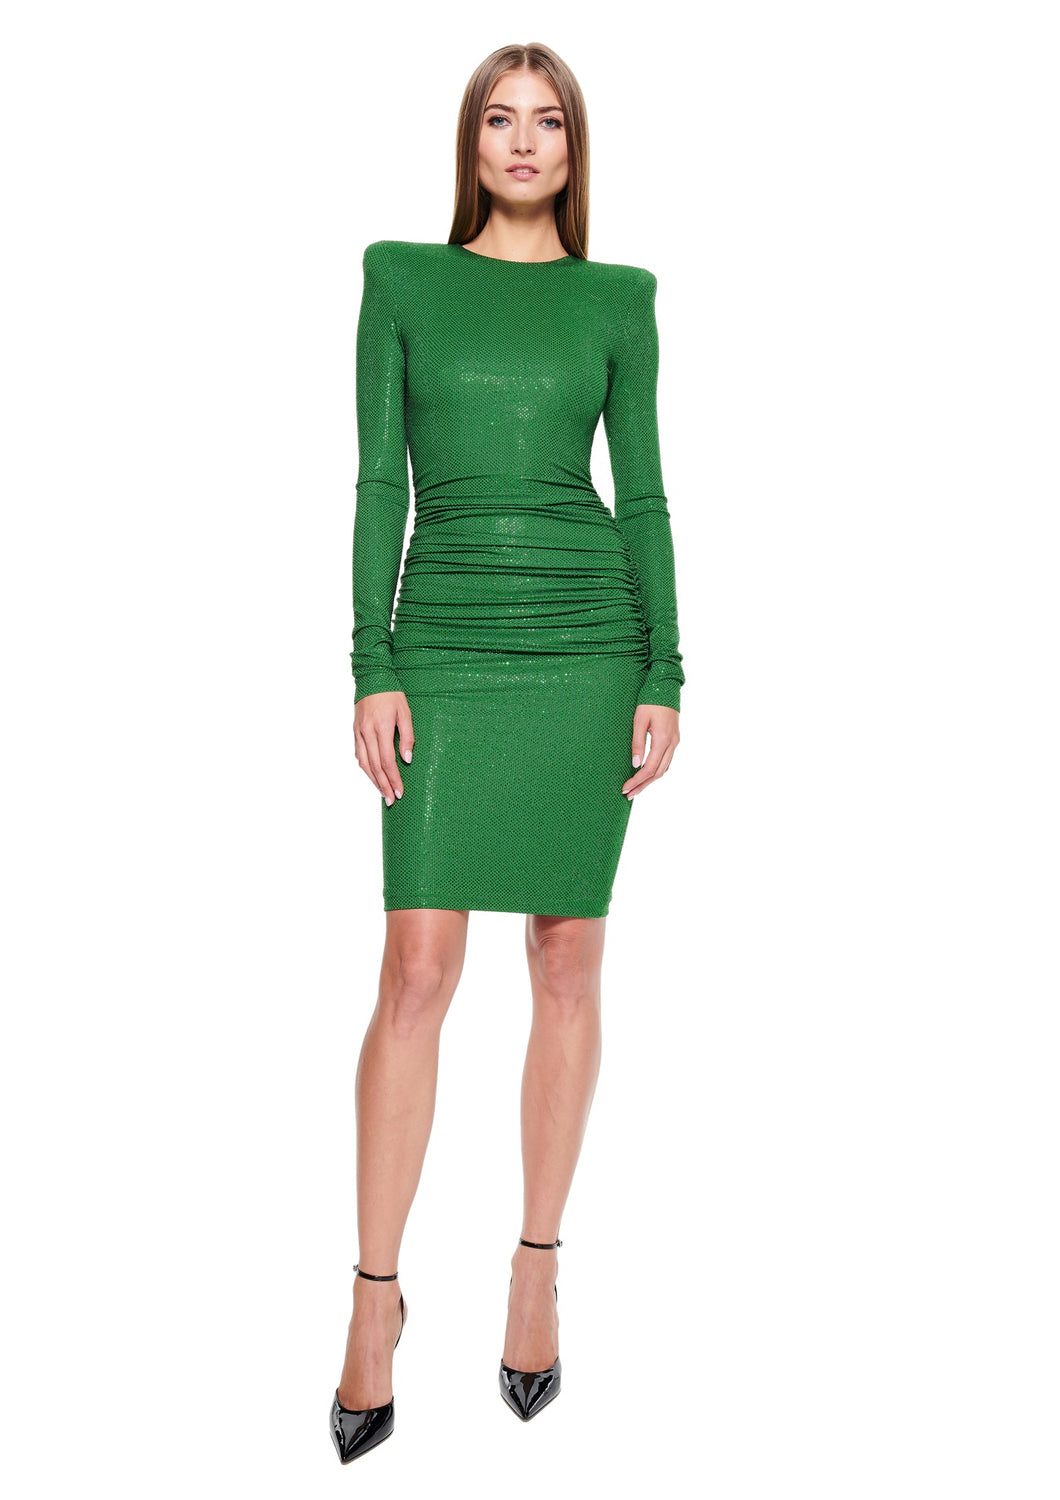 EMBELLISHED STRETCH JERSEY GREEN MIDI DRESS